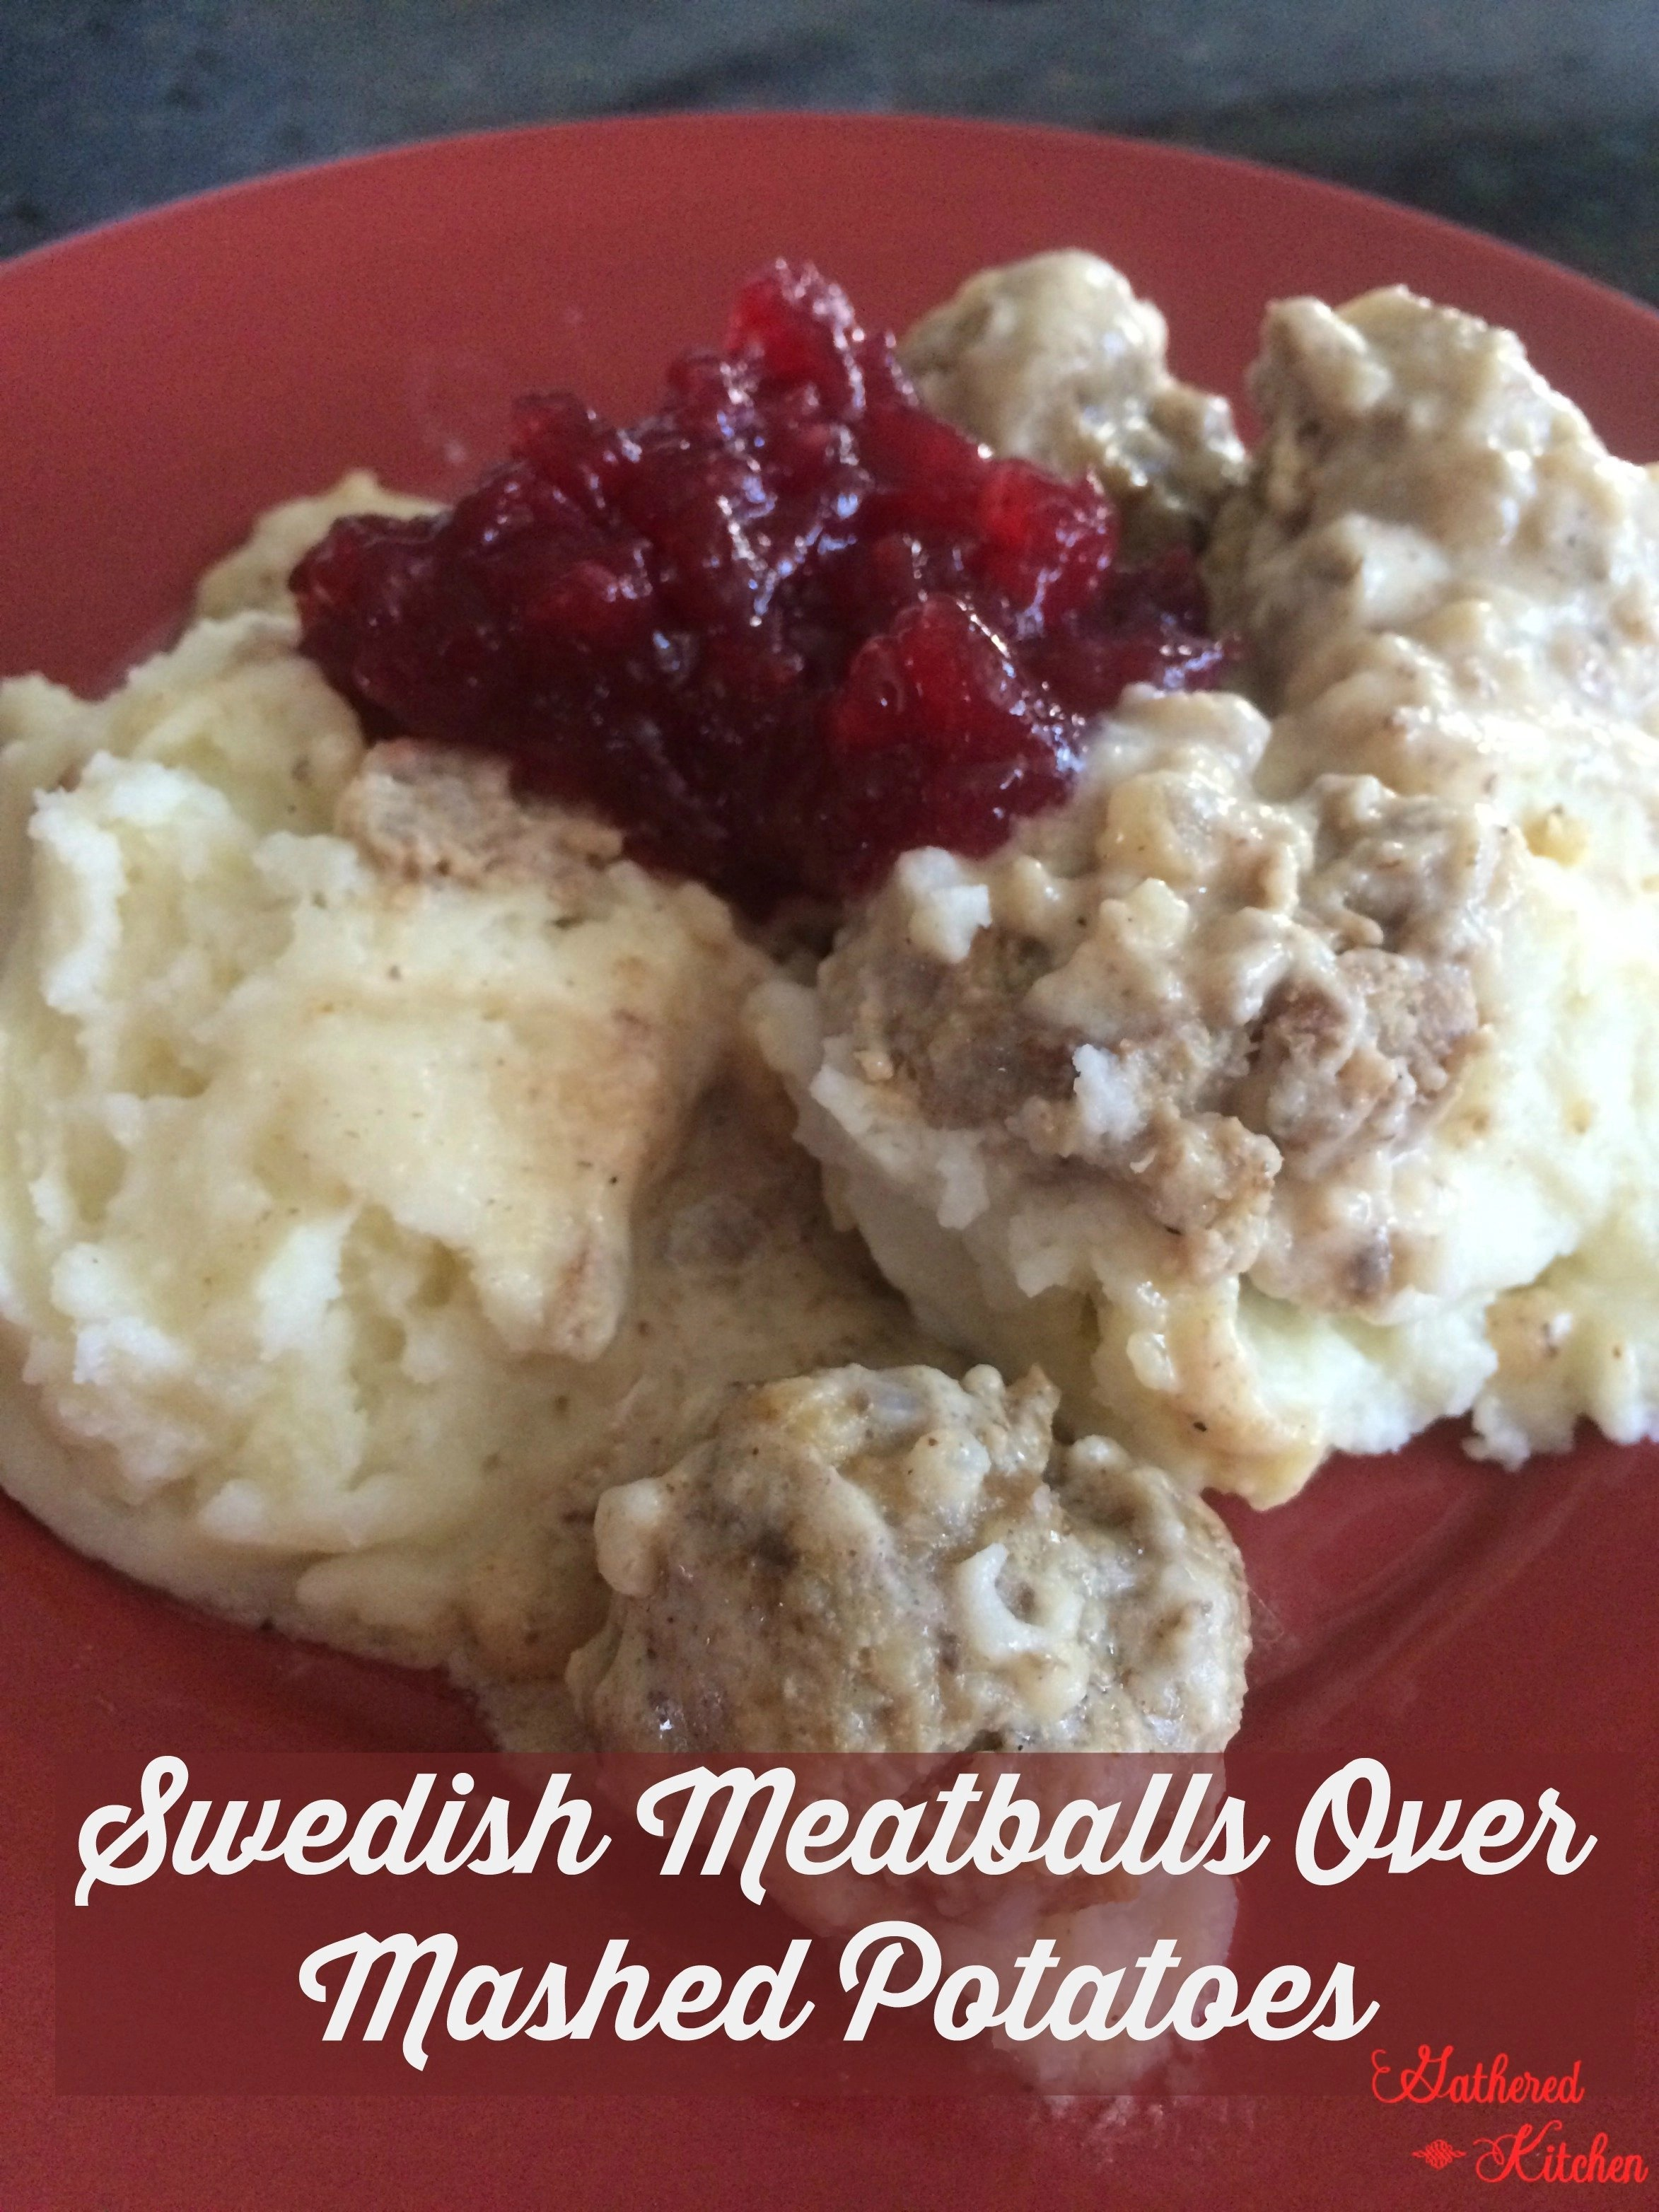 Swedish Meatballs Over Mashed Potatoes